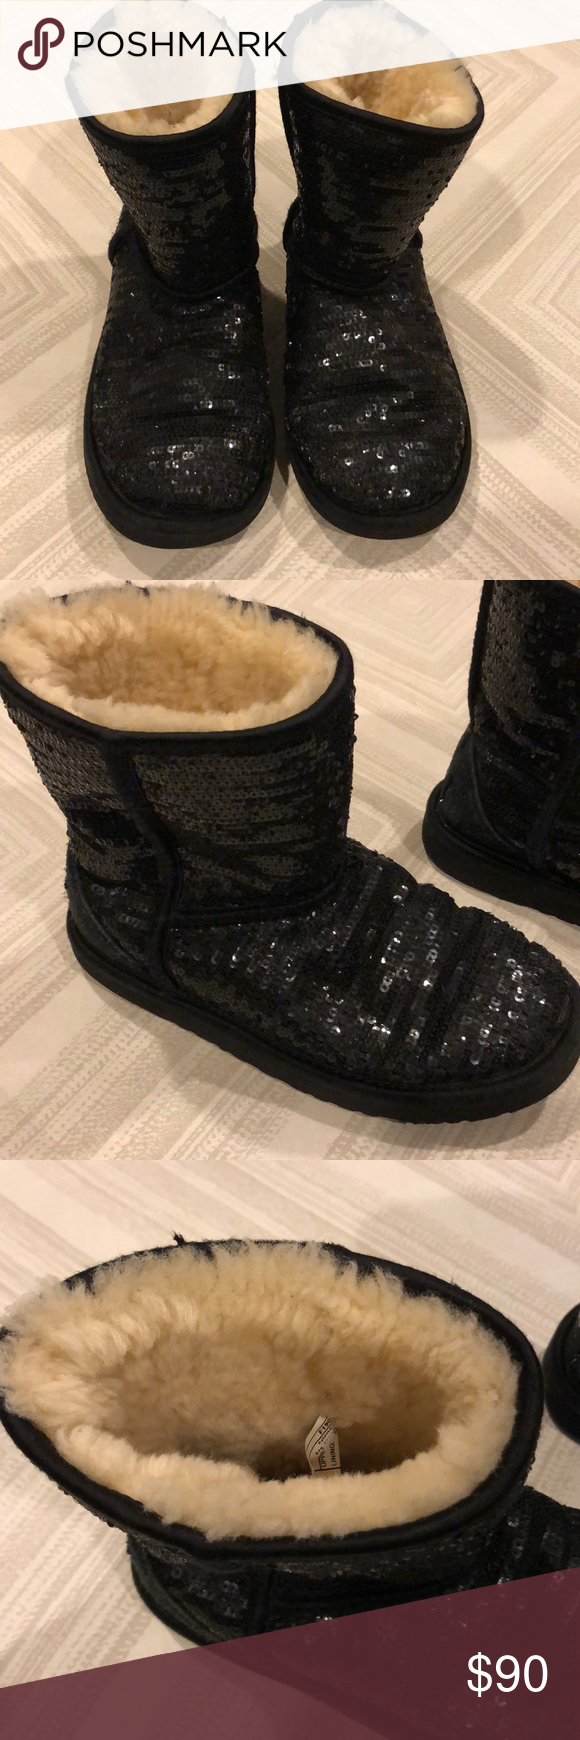 UGG Black Sequins Big Girls Short Boots Gently worn in great condition. Short boots with black sequins. Label in back fraying a little. Size 3. BM. UGG Shoes Boots #uggbootsoutfitblackgirl UGG Black Sequins Big Girls Short Boots Gently worn in great condition. Short boots with black sequins. Label in back fraying a little. Size 3. BM. UGG Shoes Boots #uggbootsoutfitblackgirl